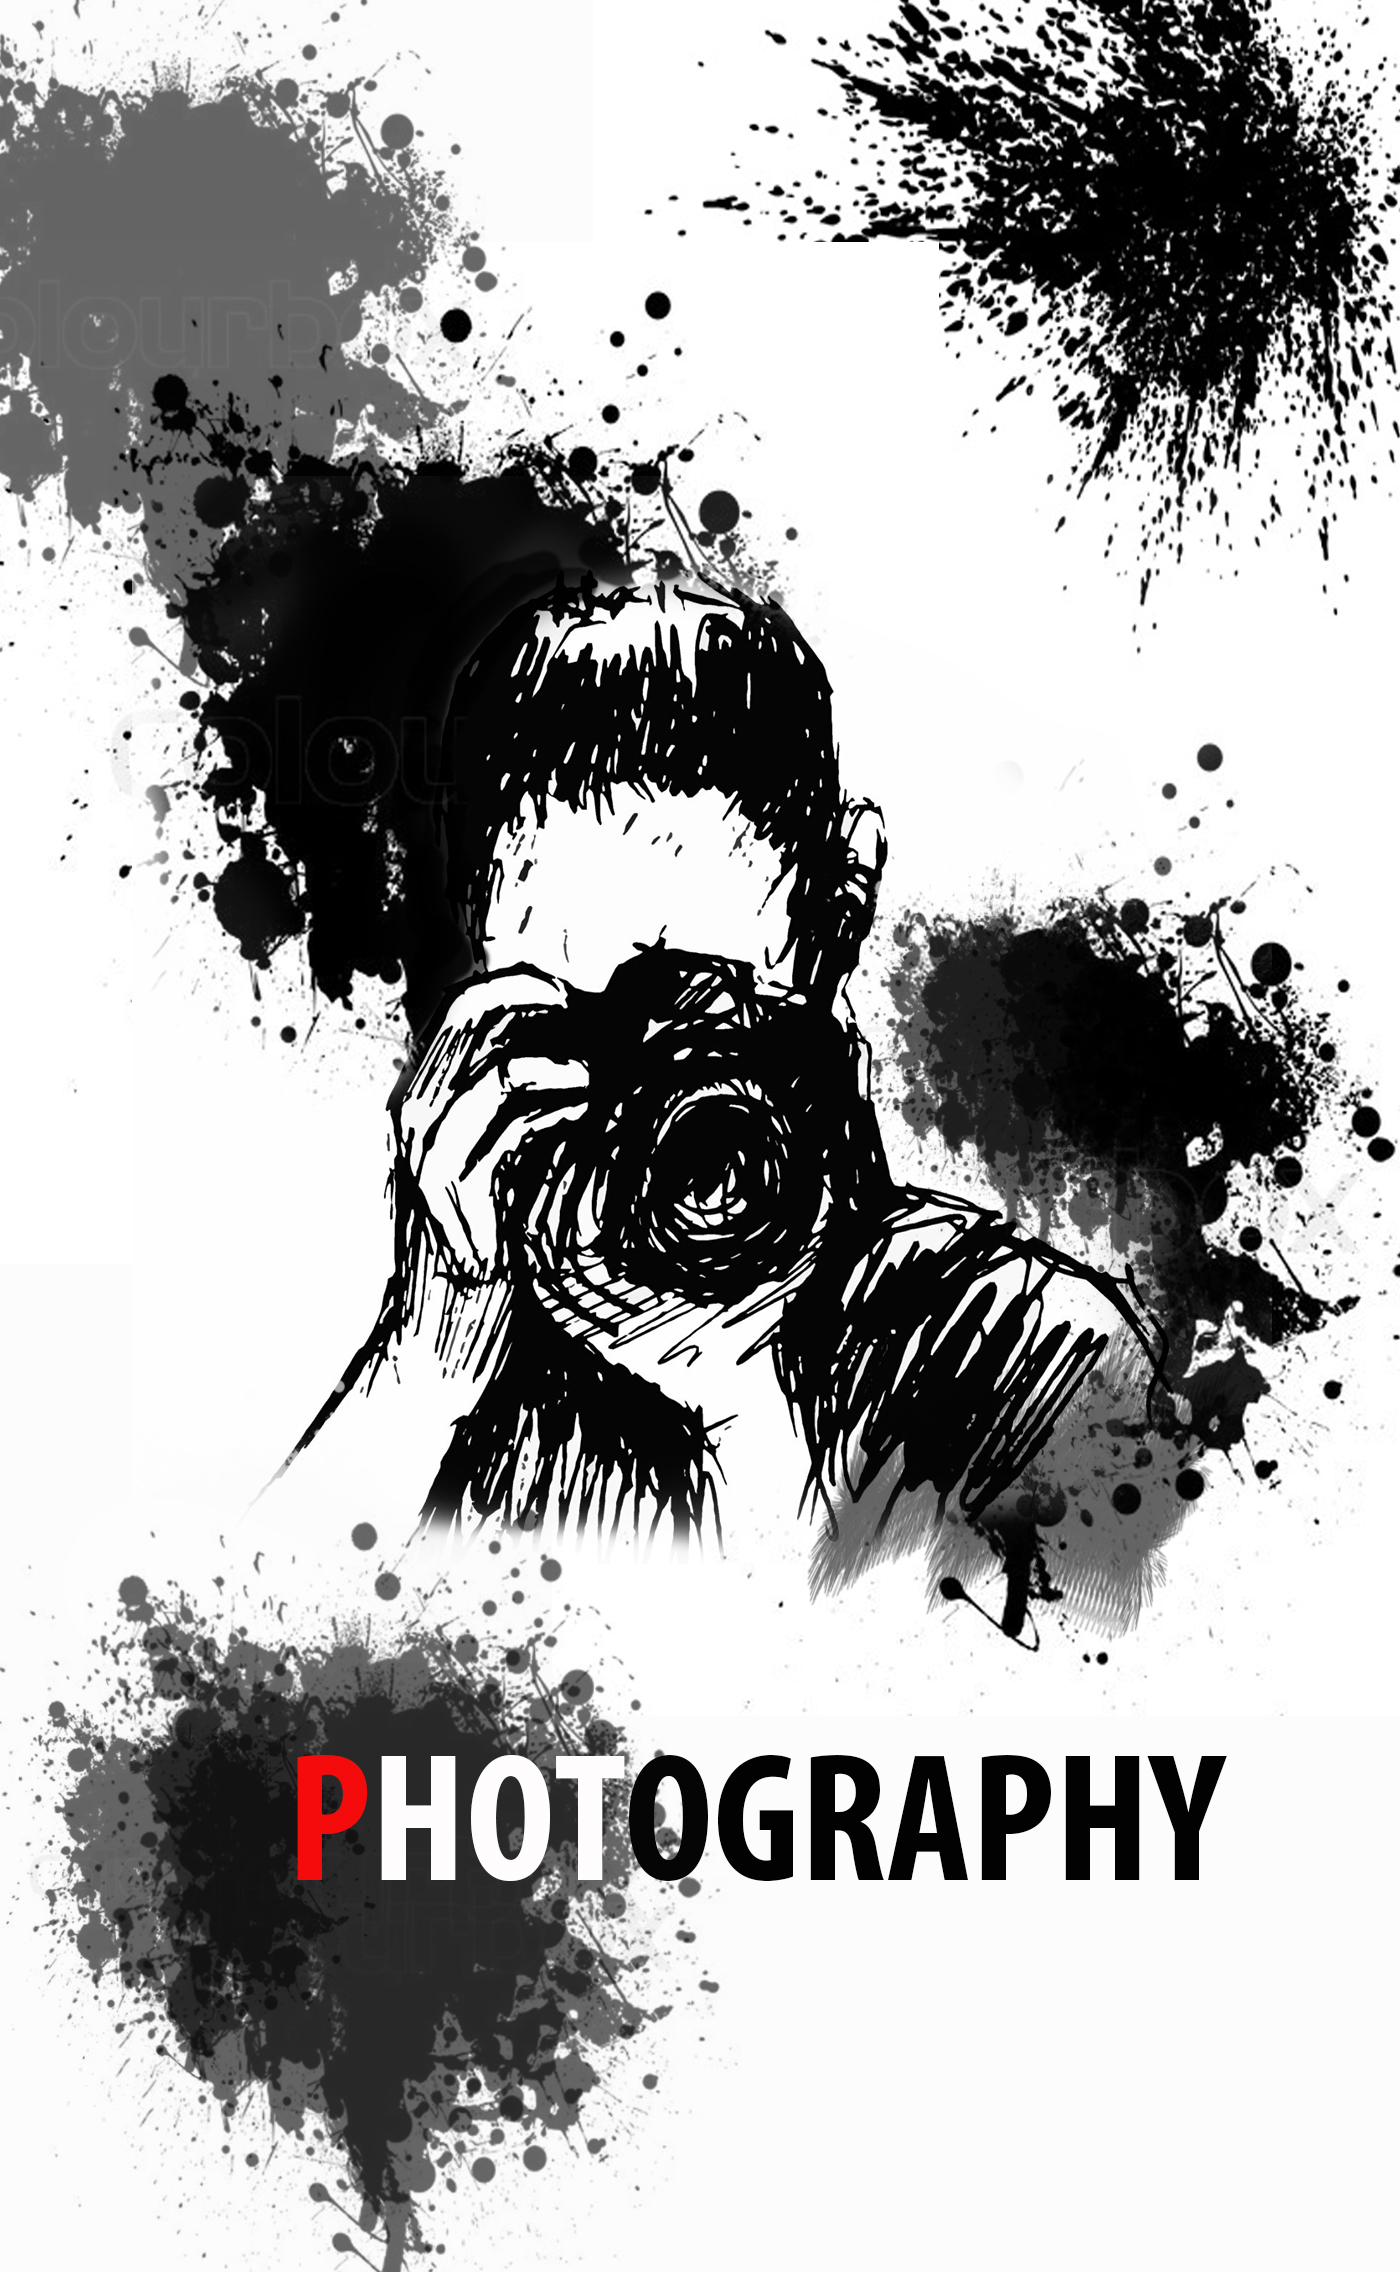 photography poster